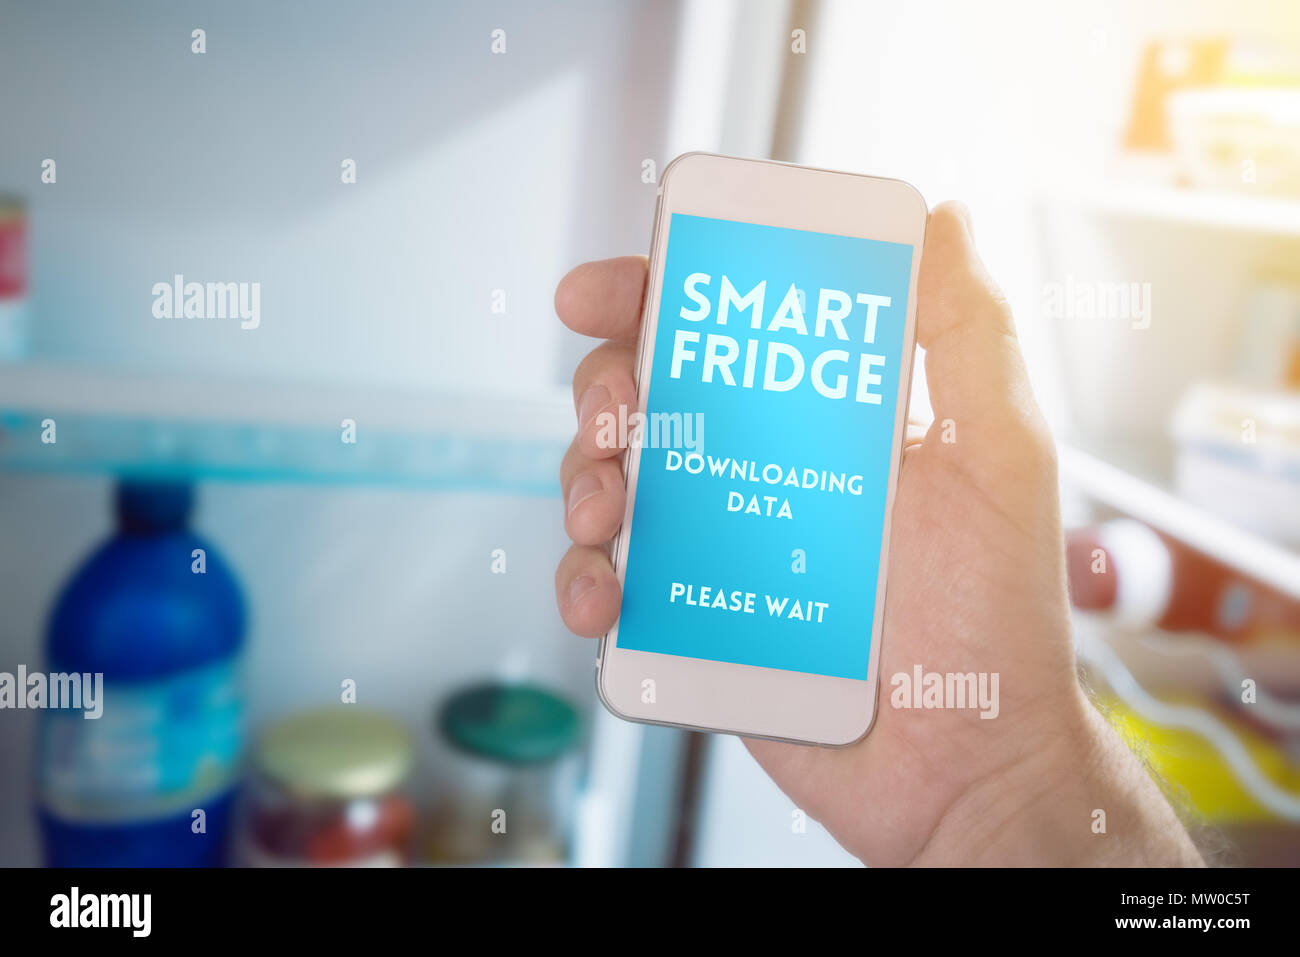 Internet of things, smartphone connecting with refrigerator to ...